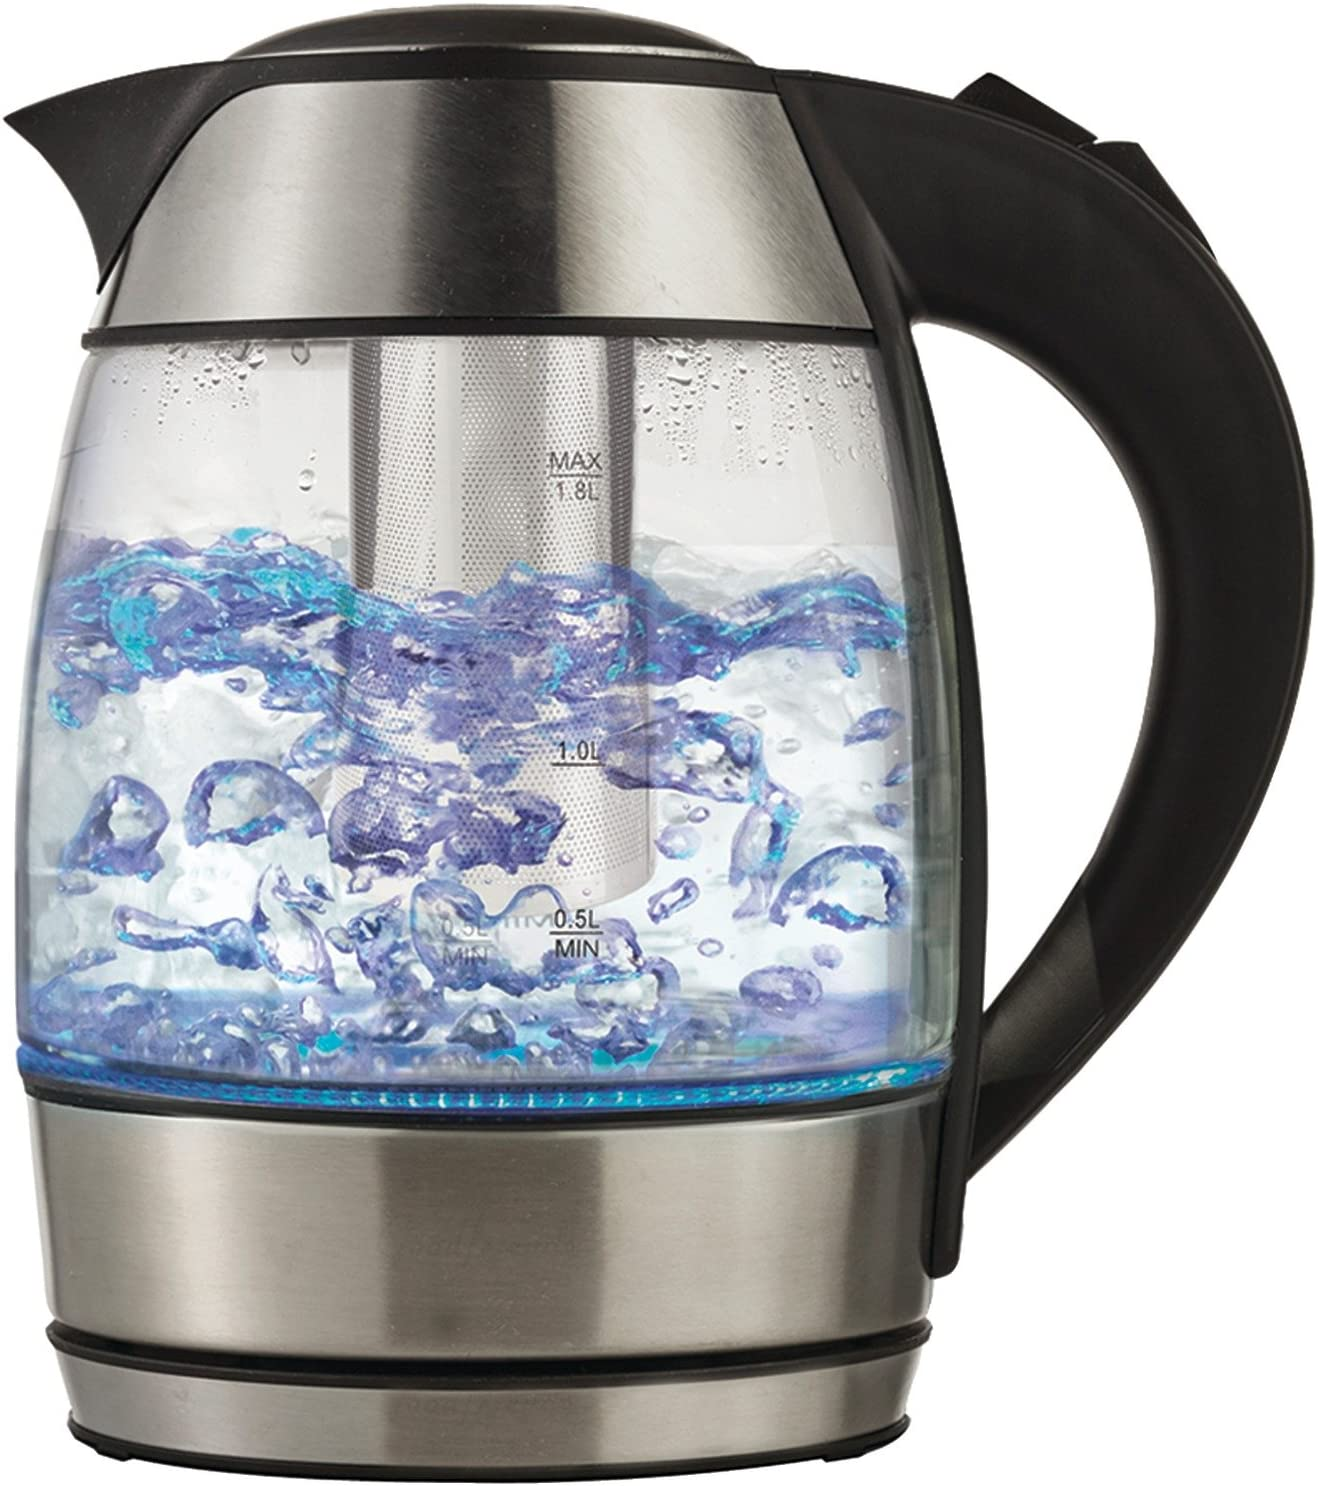 Brentwood KT-1960BK Cordless Electric Kettle with Tea Infuser, Glass 1.8L, Black